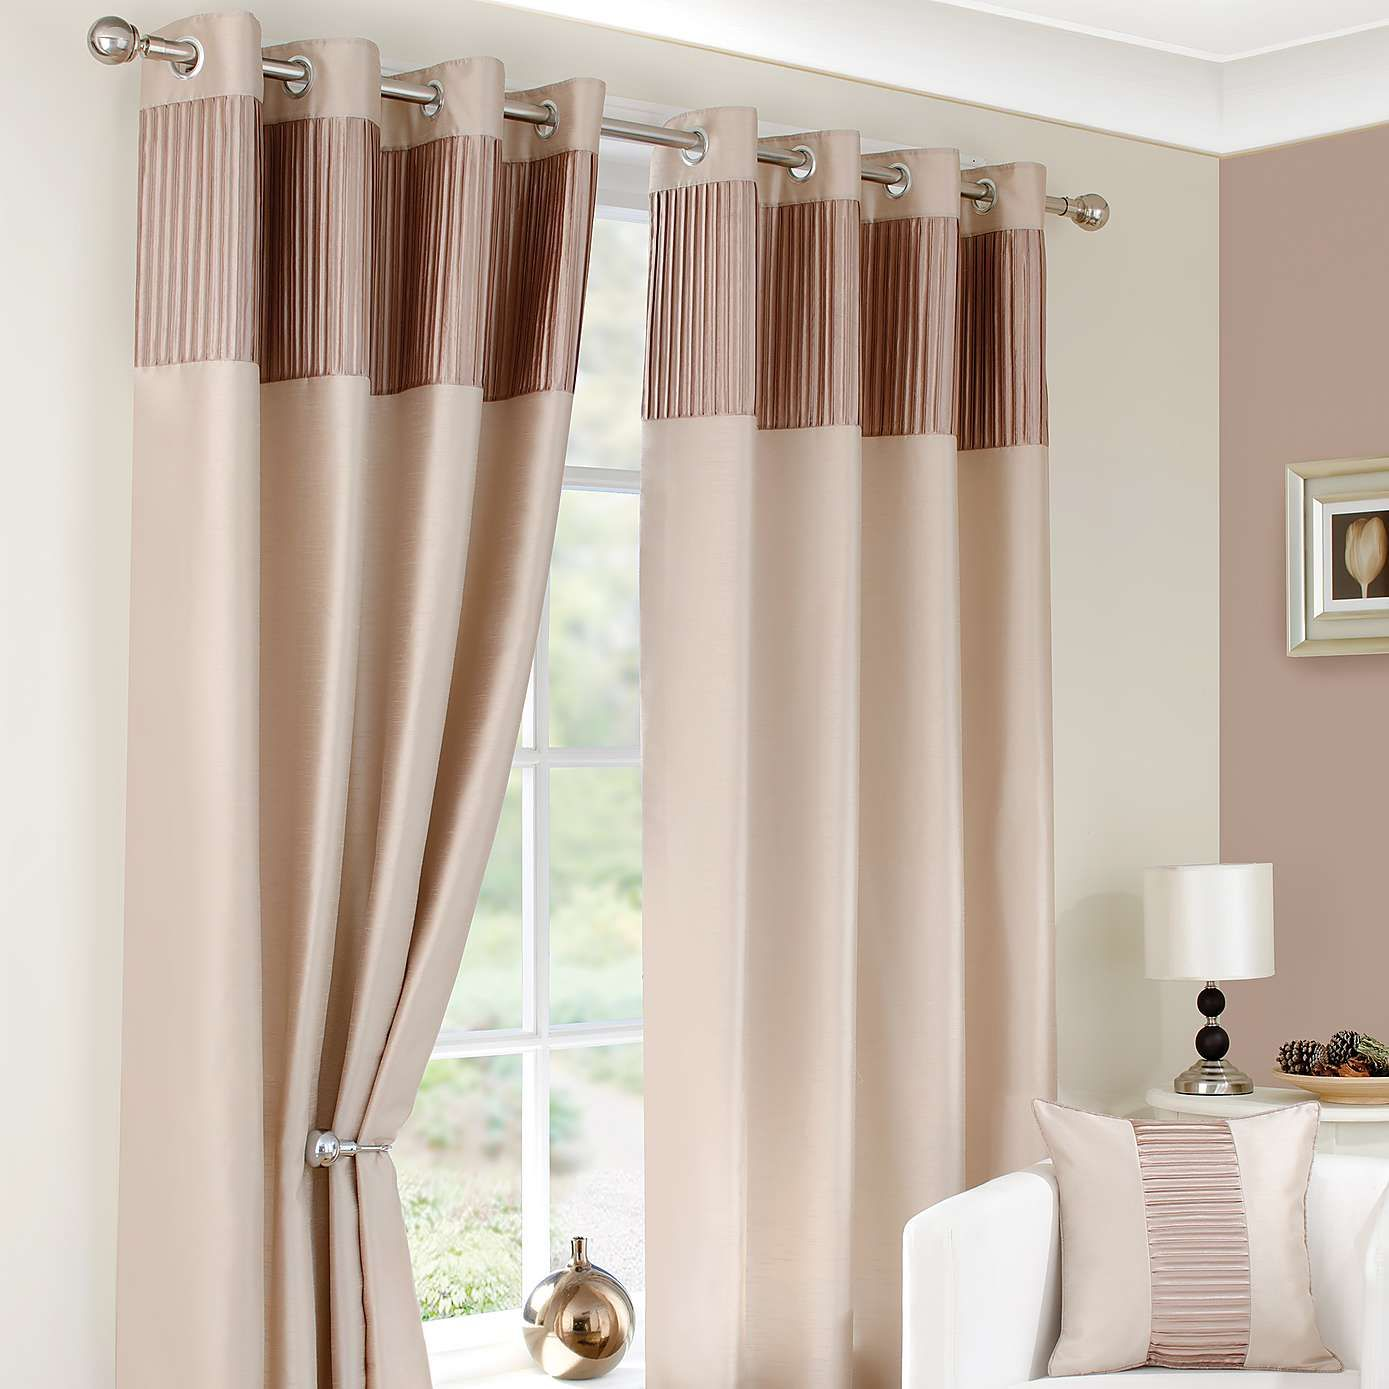 Taupe montreal lined eyelet curtains dunelm interior design curtains curtains dunelm for Lined valances for living room